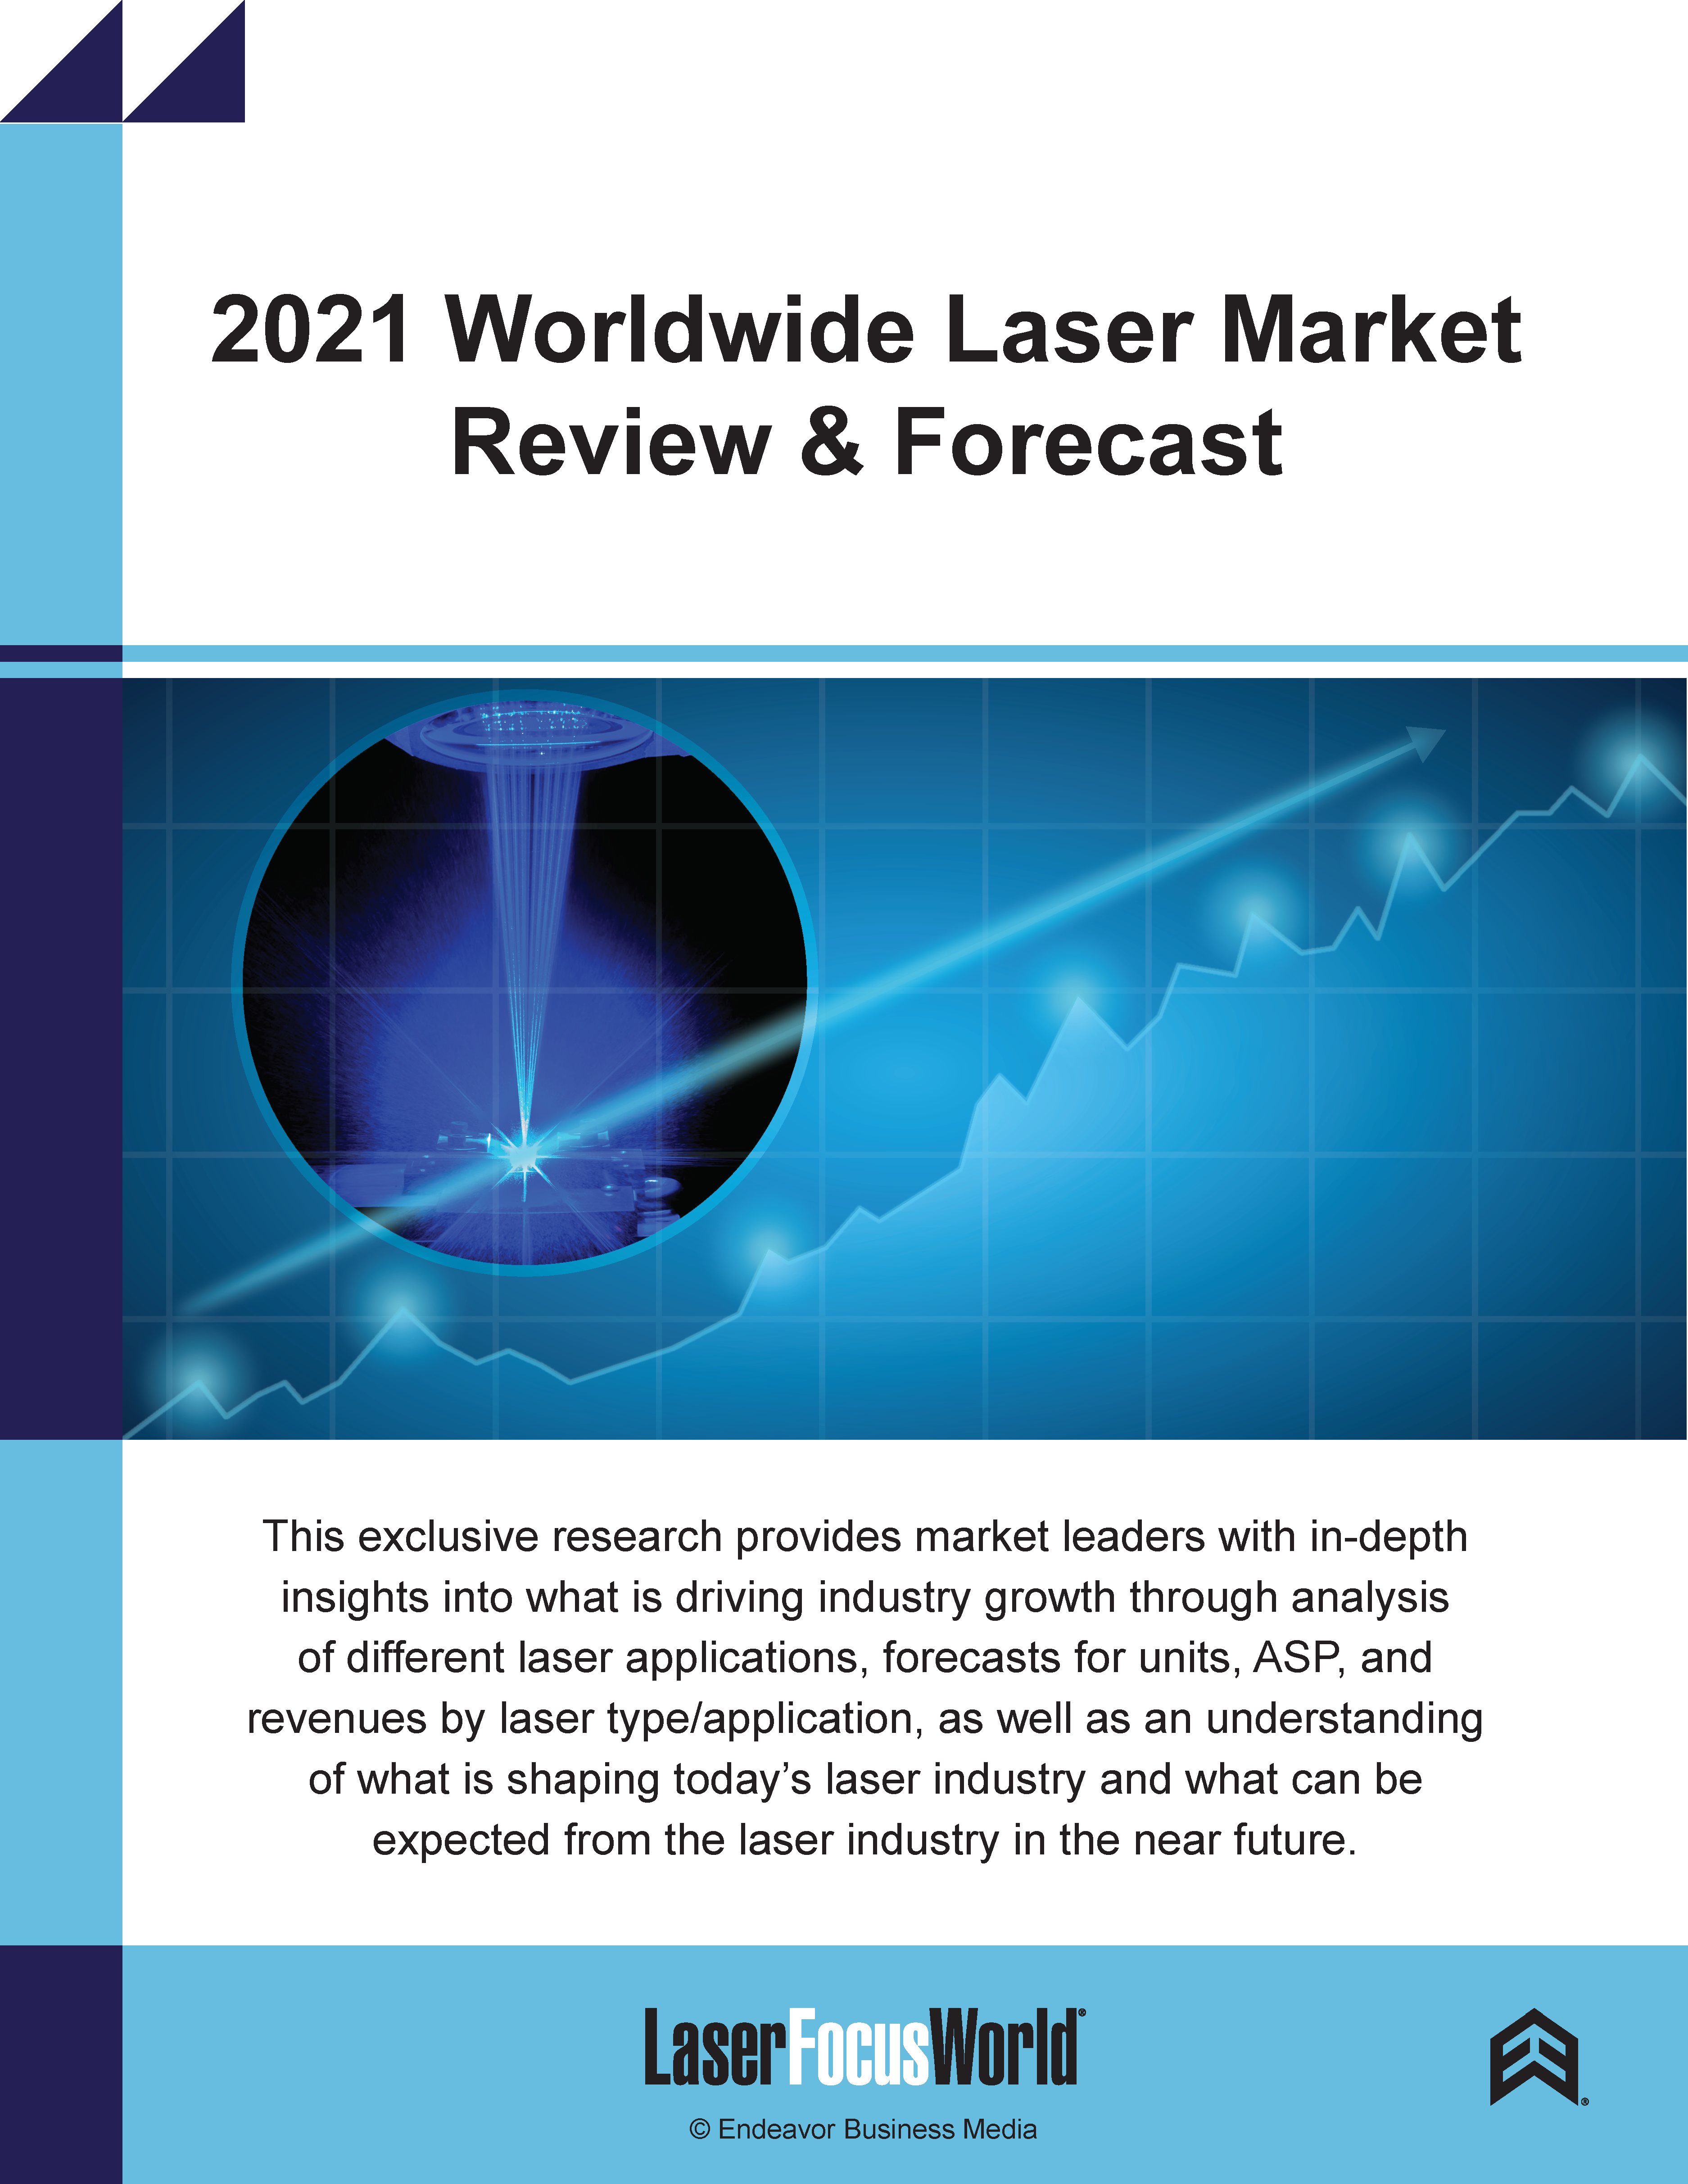 The Worldwide Market for Lasers: Market Review and Forecast 2021